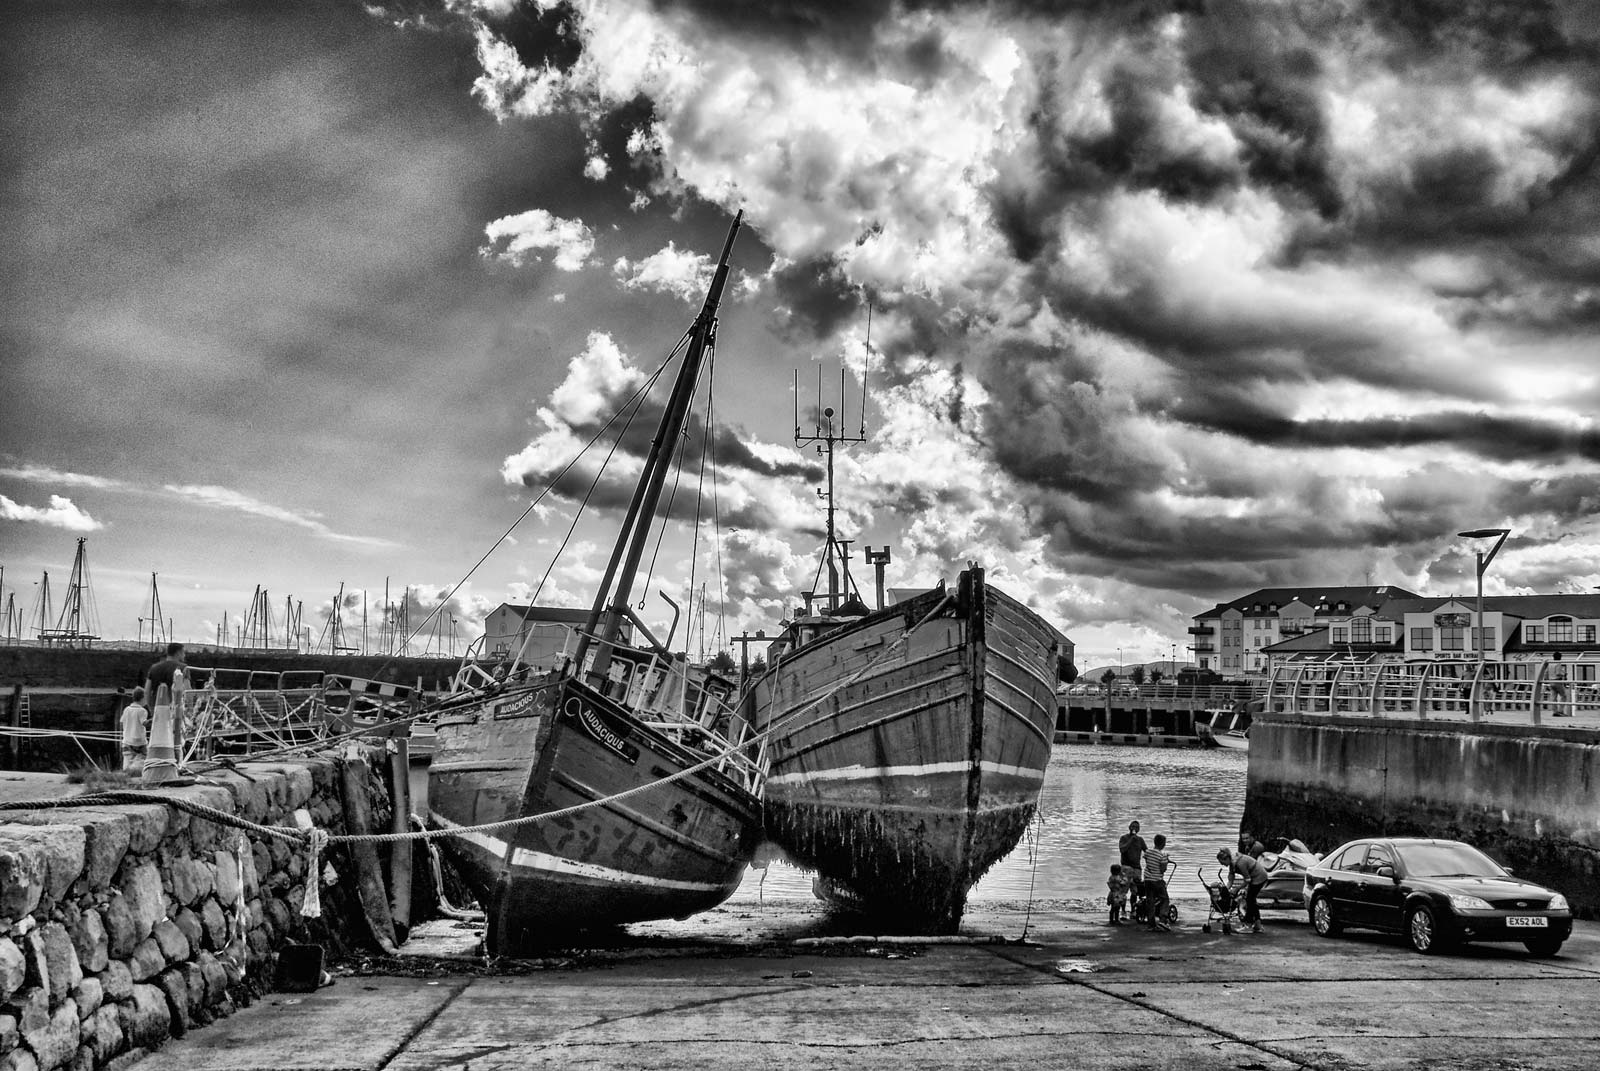 Old Ships in Carrickfergus Harbour